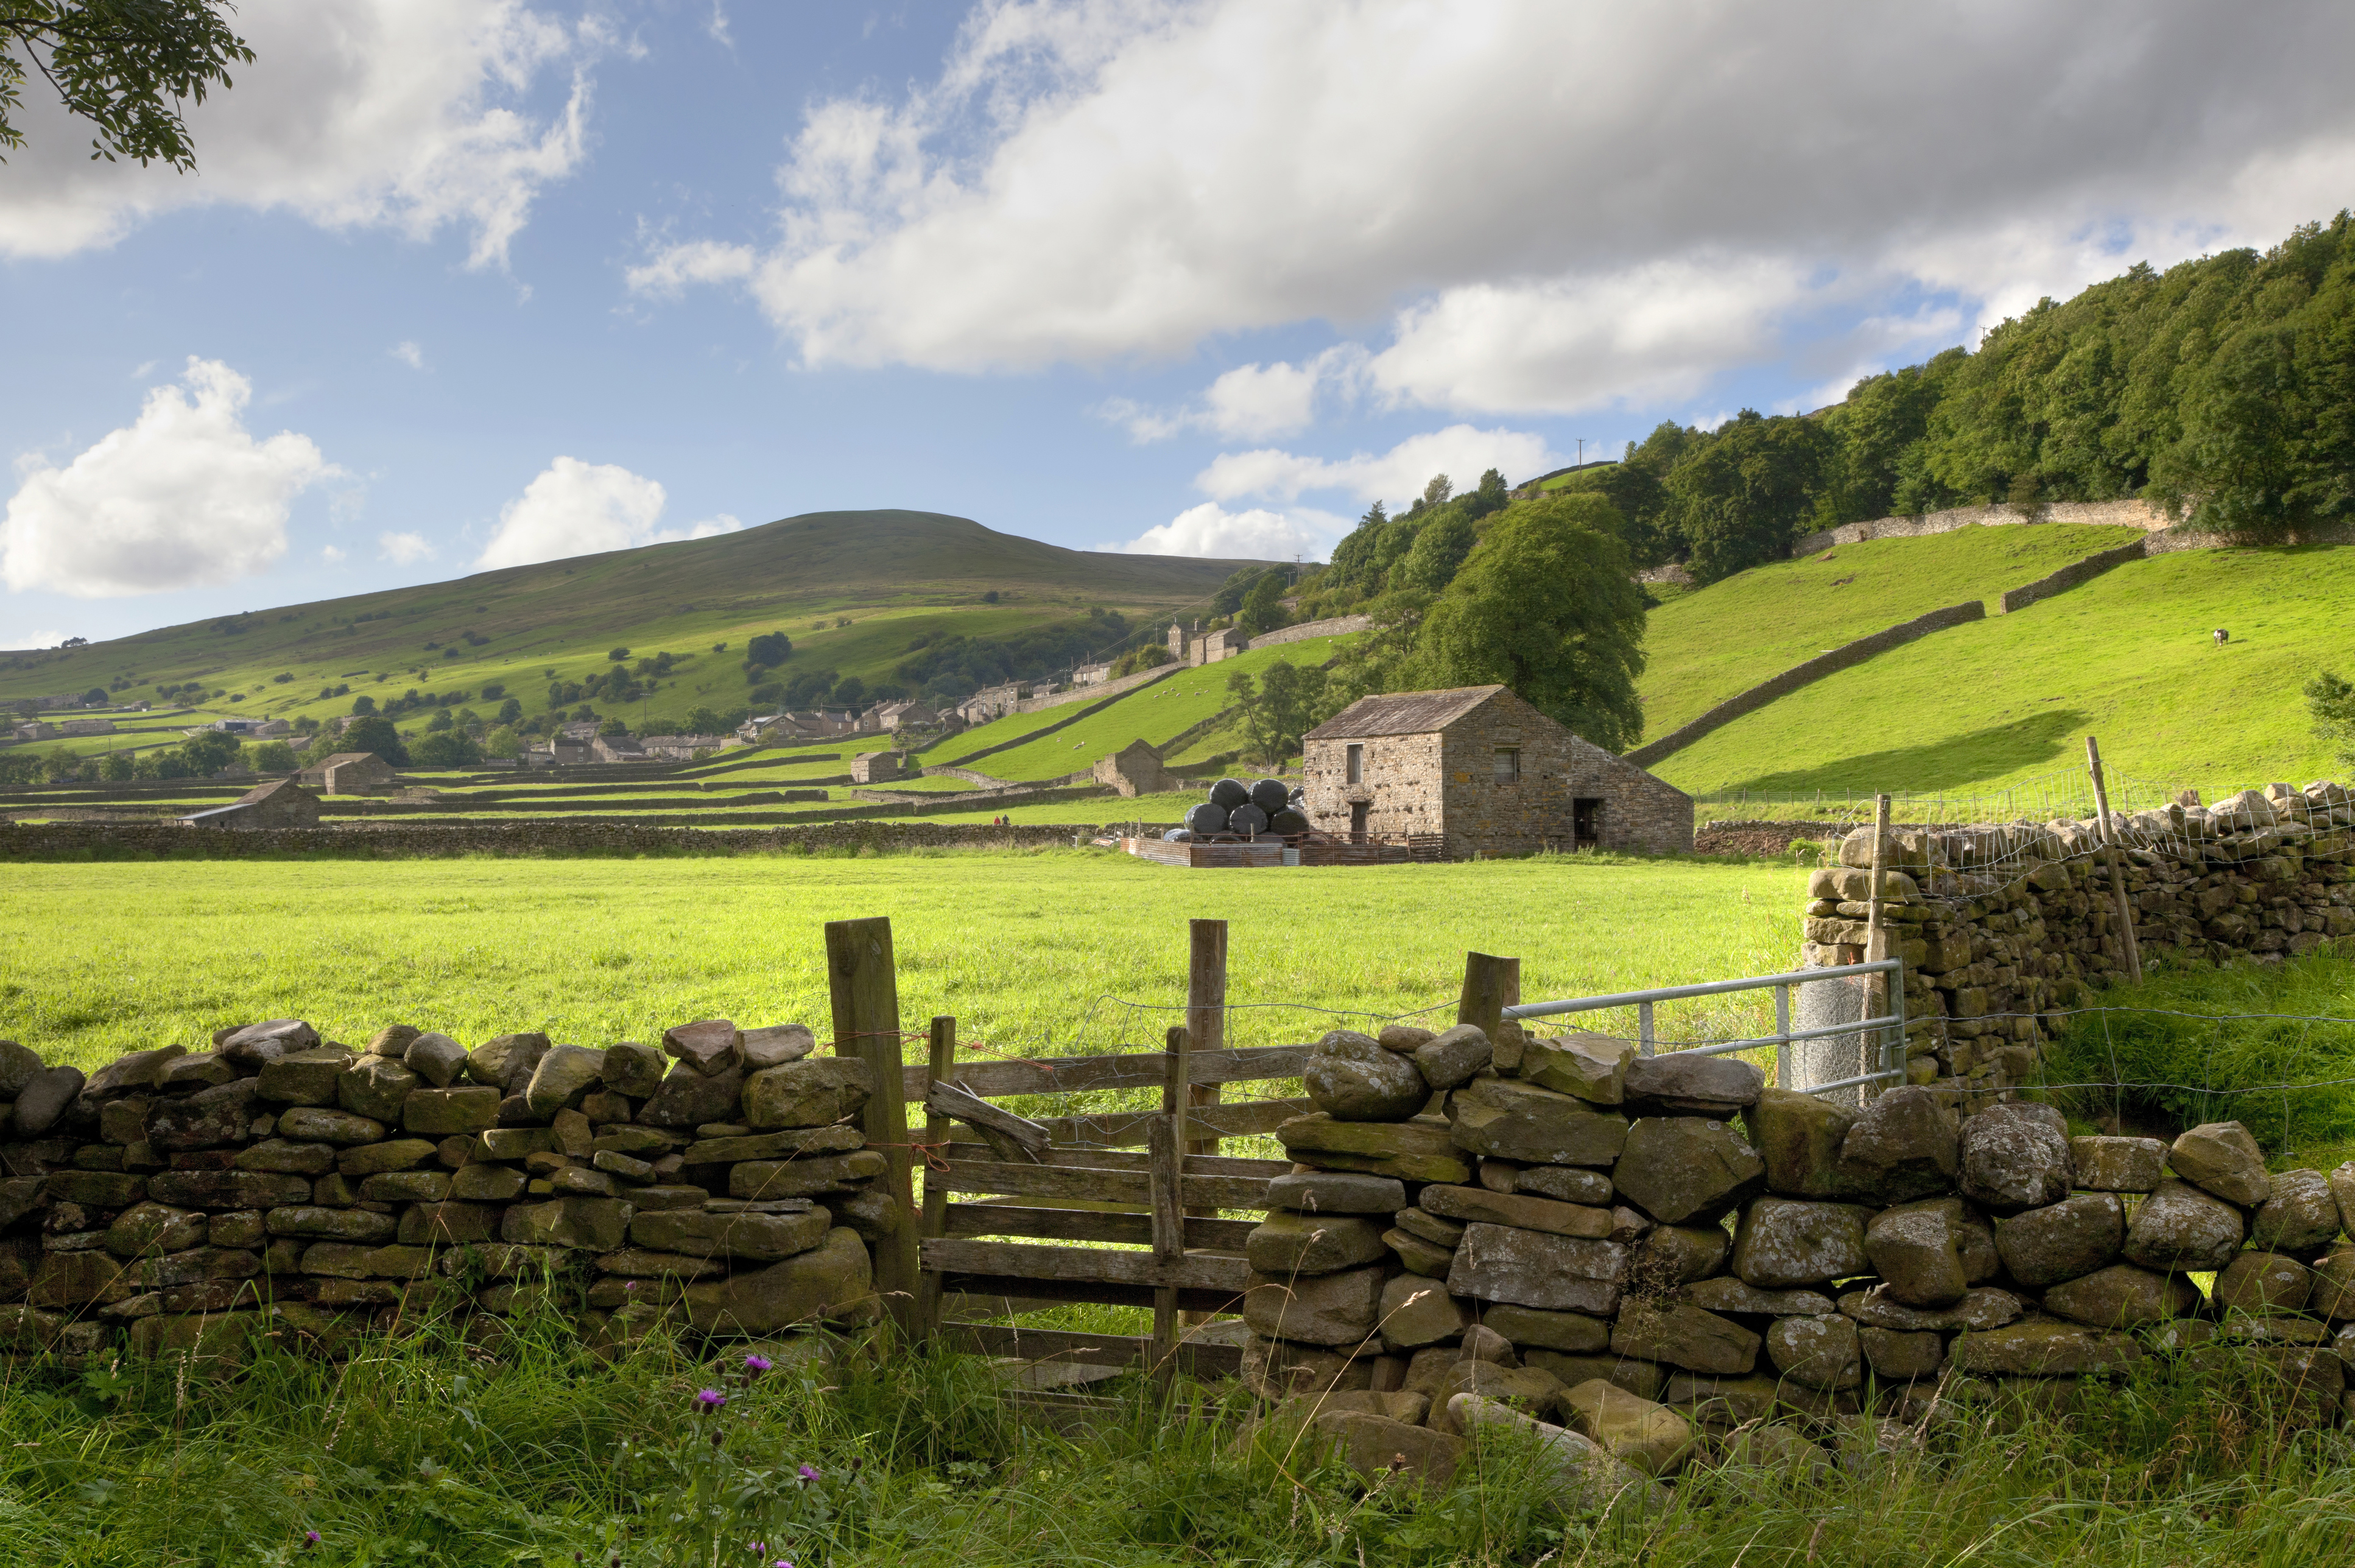 Overseas visitors flock to Yorkshire